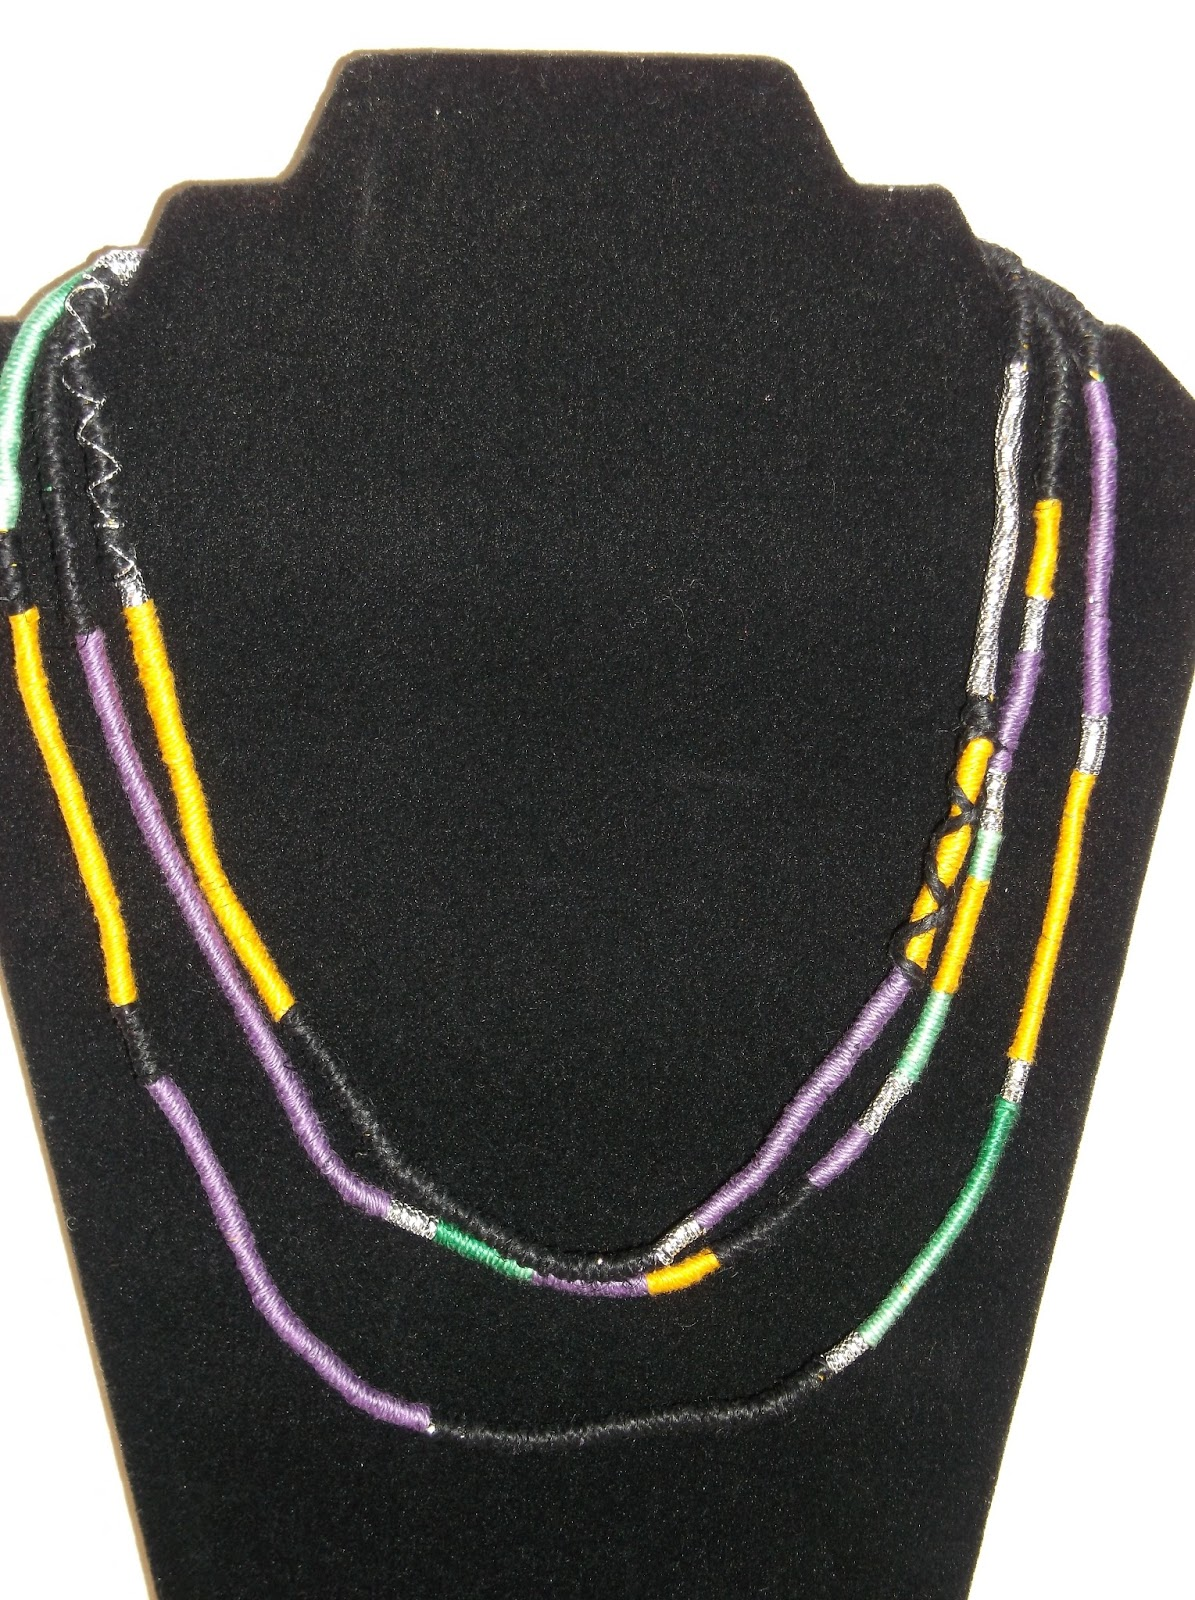 New! My Roots African Tribal Handmade Necklace